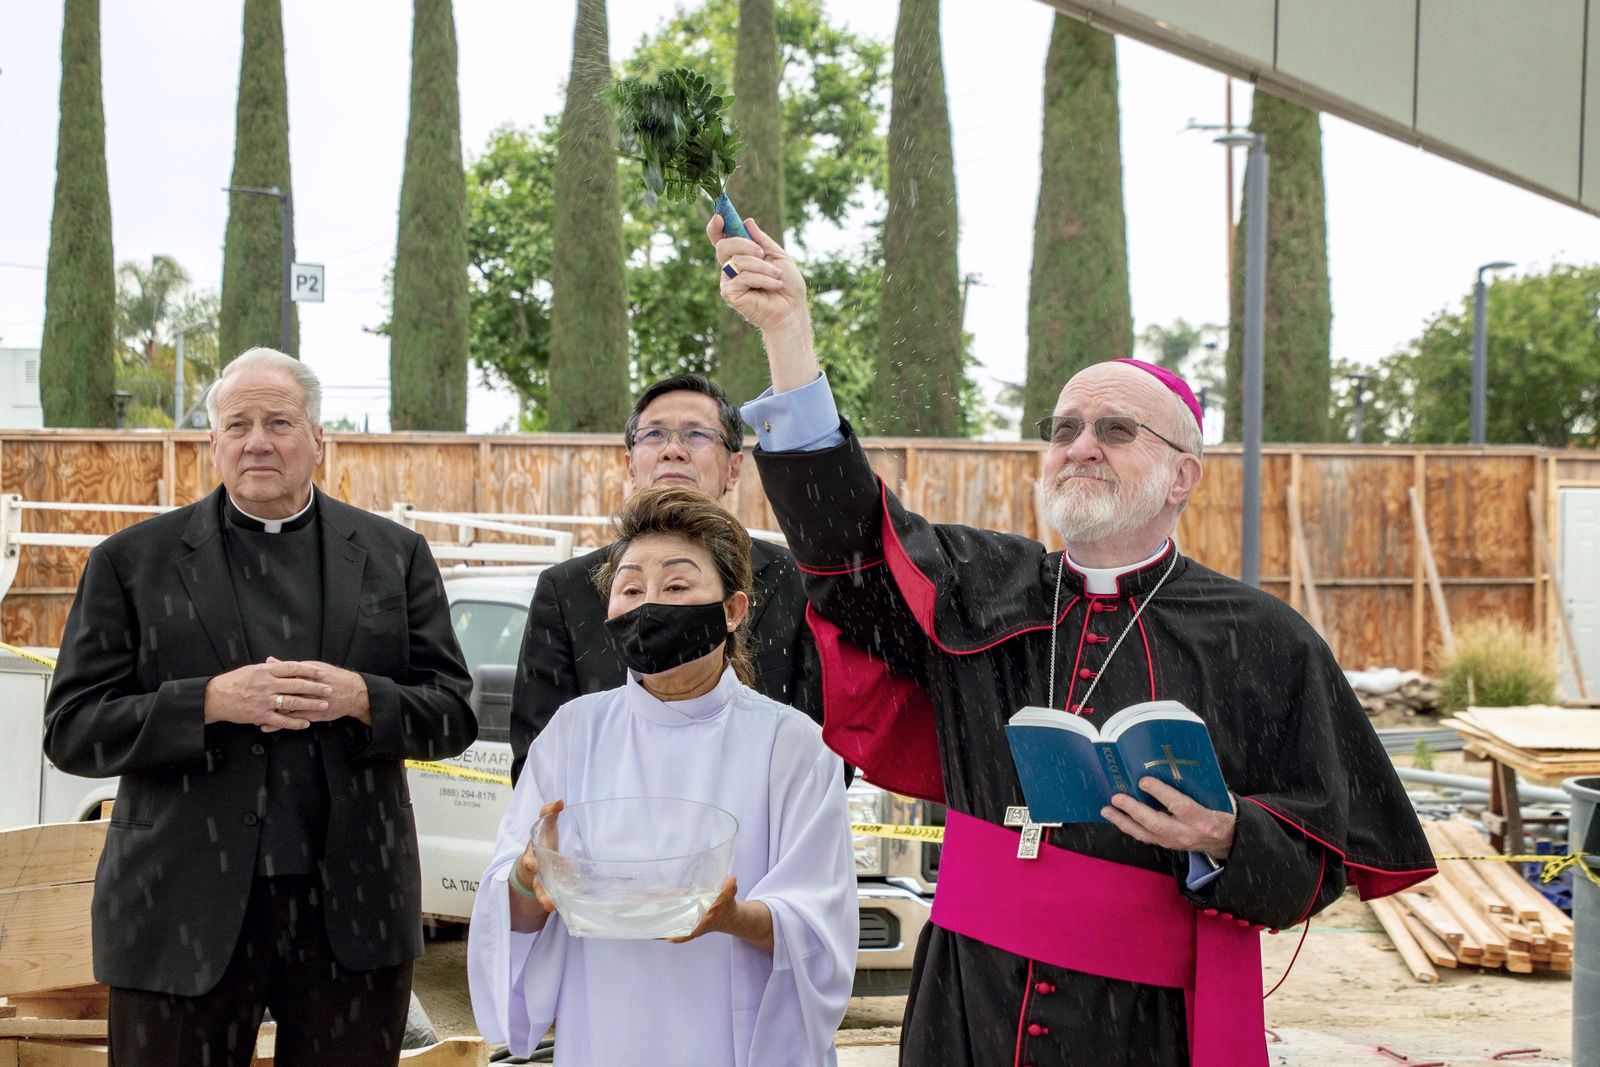 Bishop Kevin Vann blessing the Our Lady of La Vang sculpture during its installation. Photo courtesy Diocese of Orange. Note: Photo taken during construction.